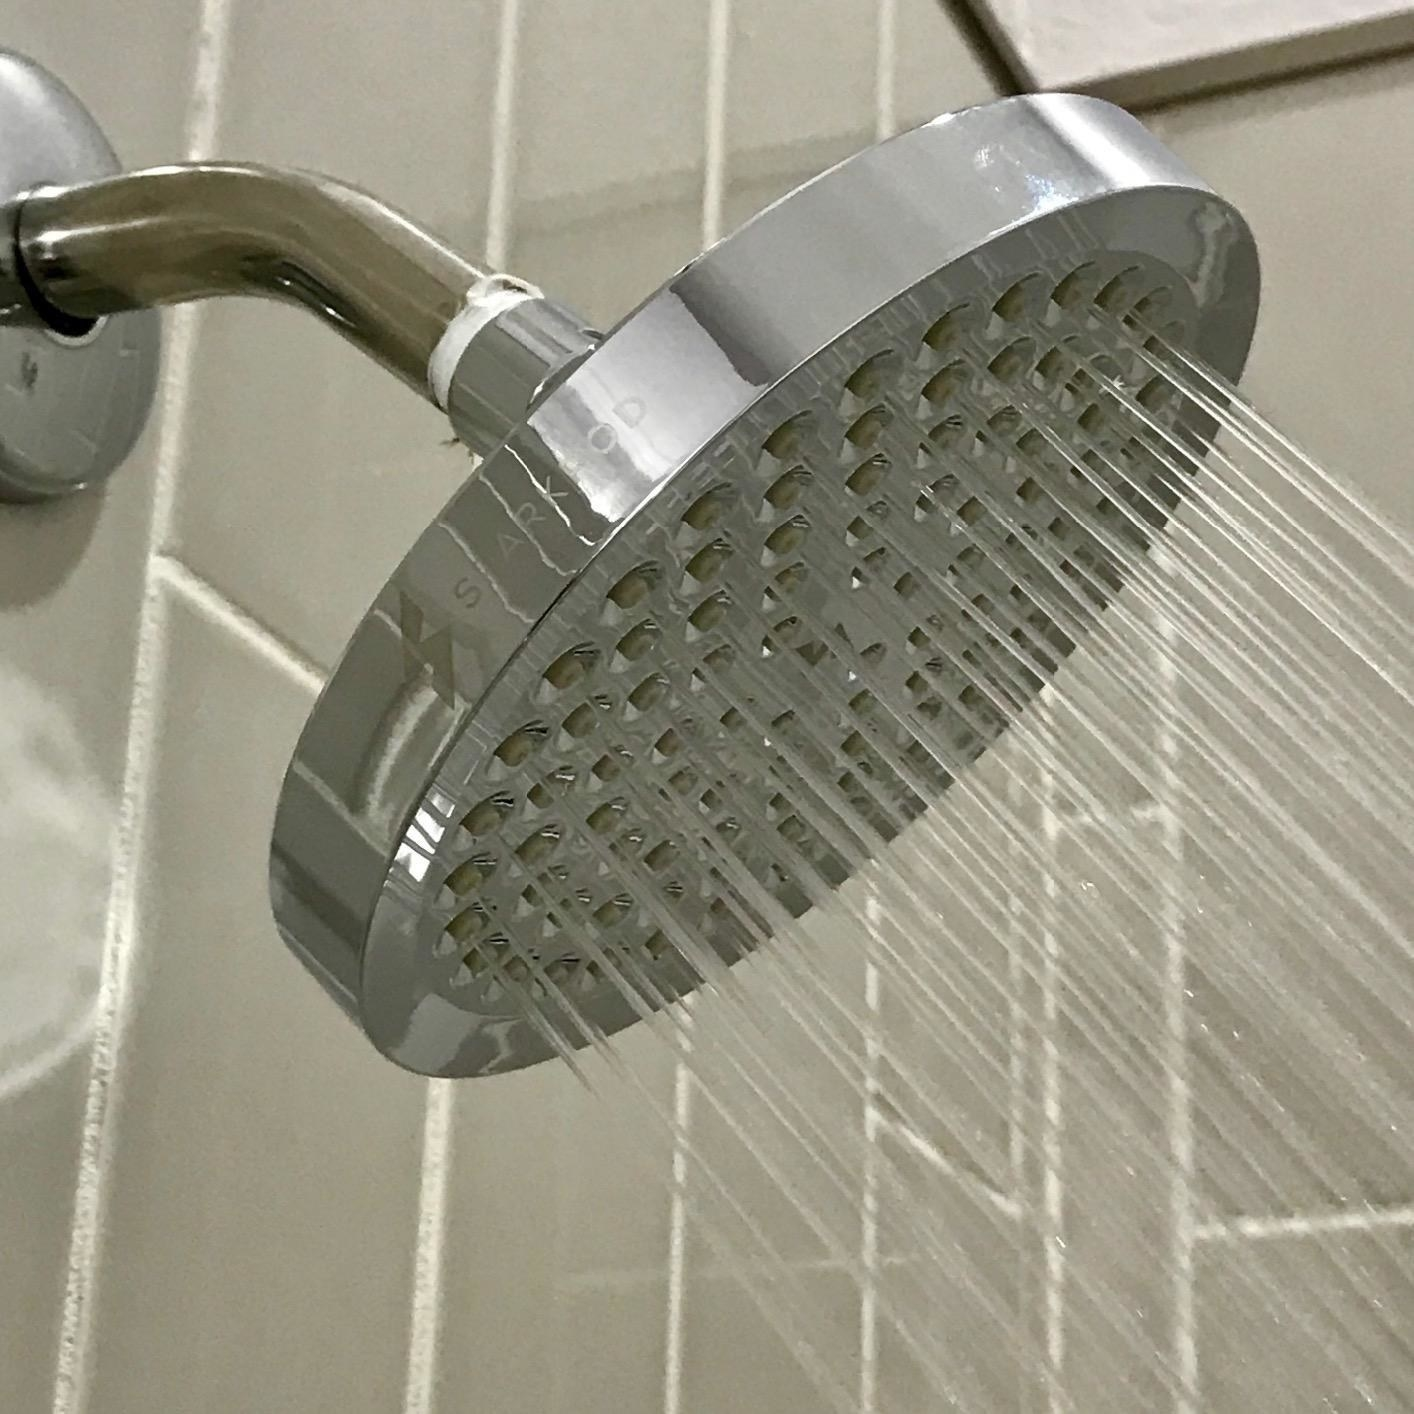 reviewer photo of the shower head with water spraying out of it